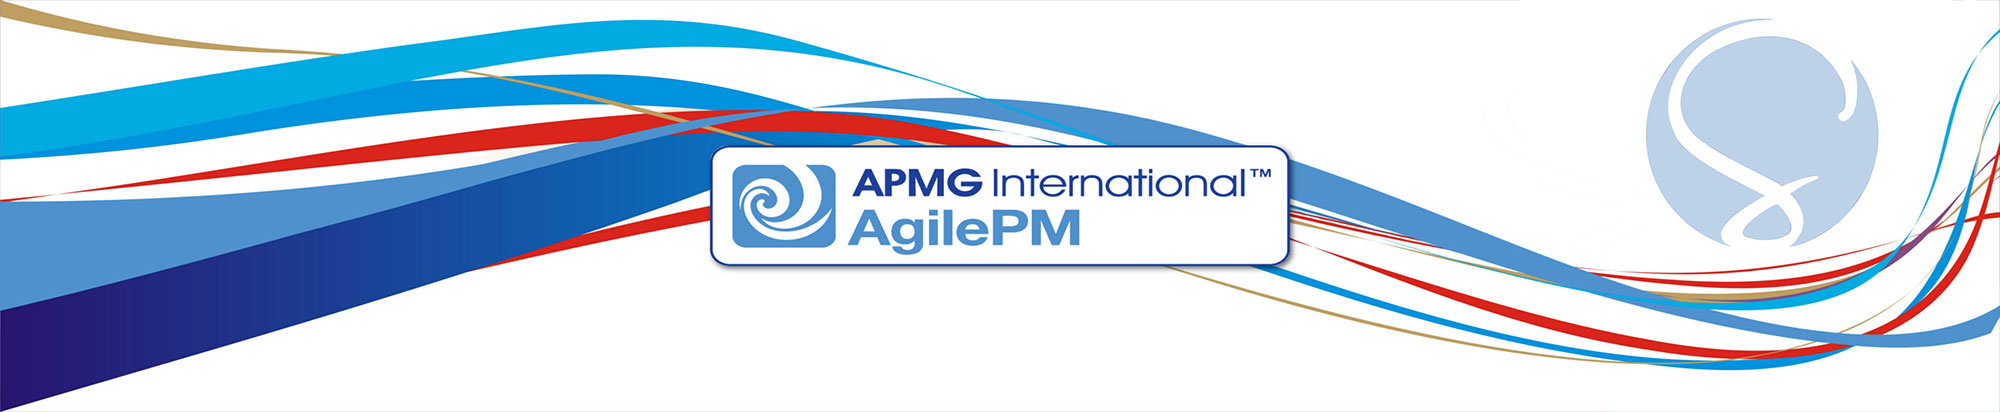 Agile PM Training & Certification